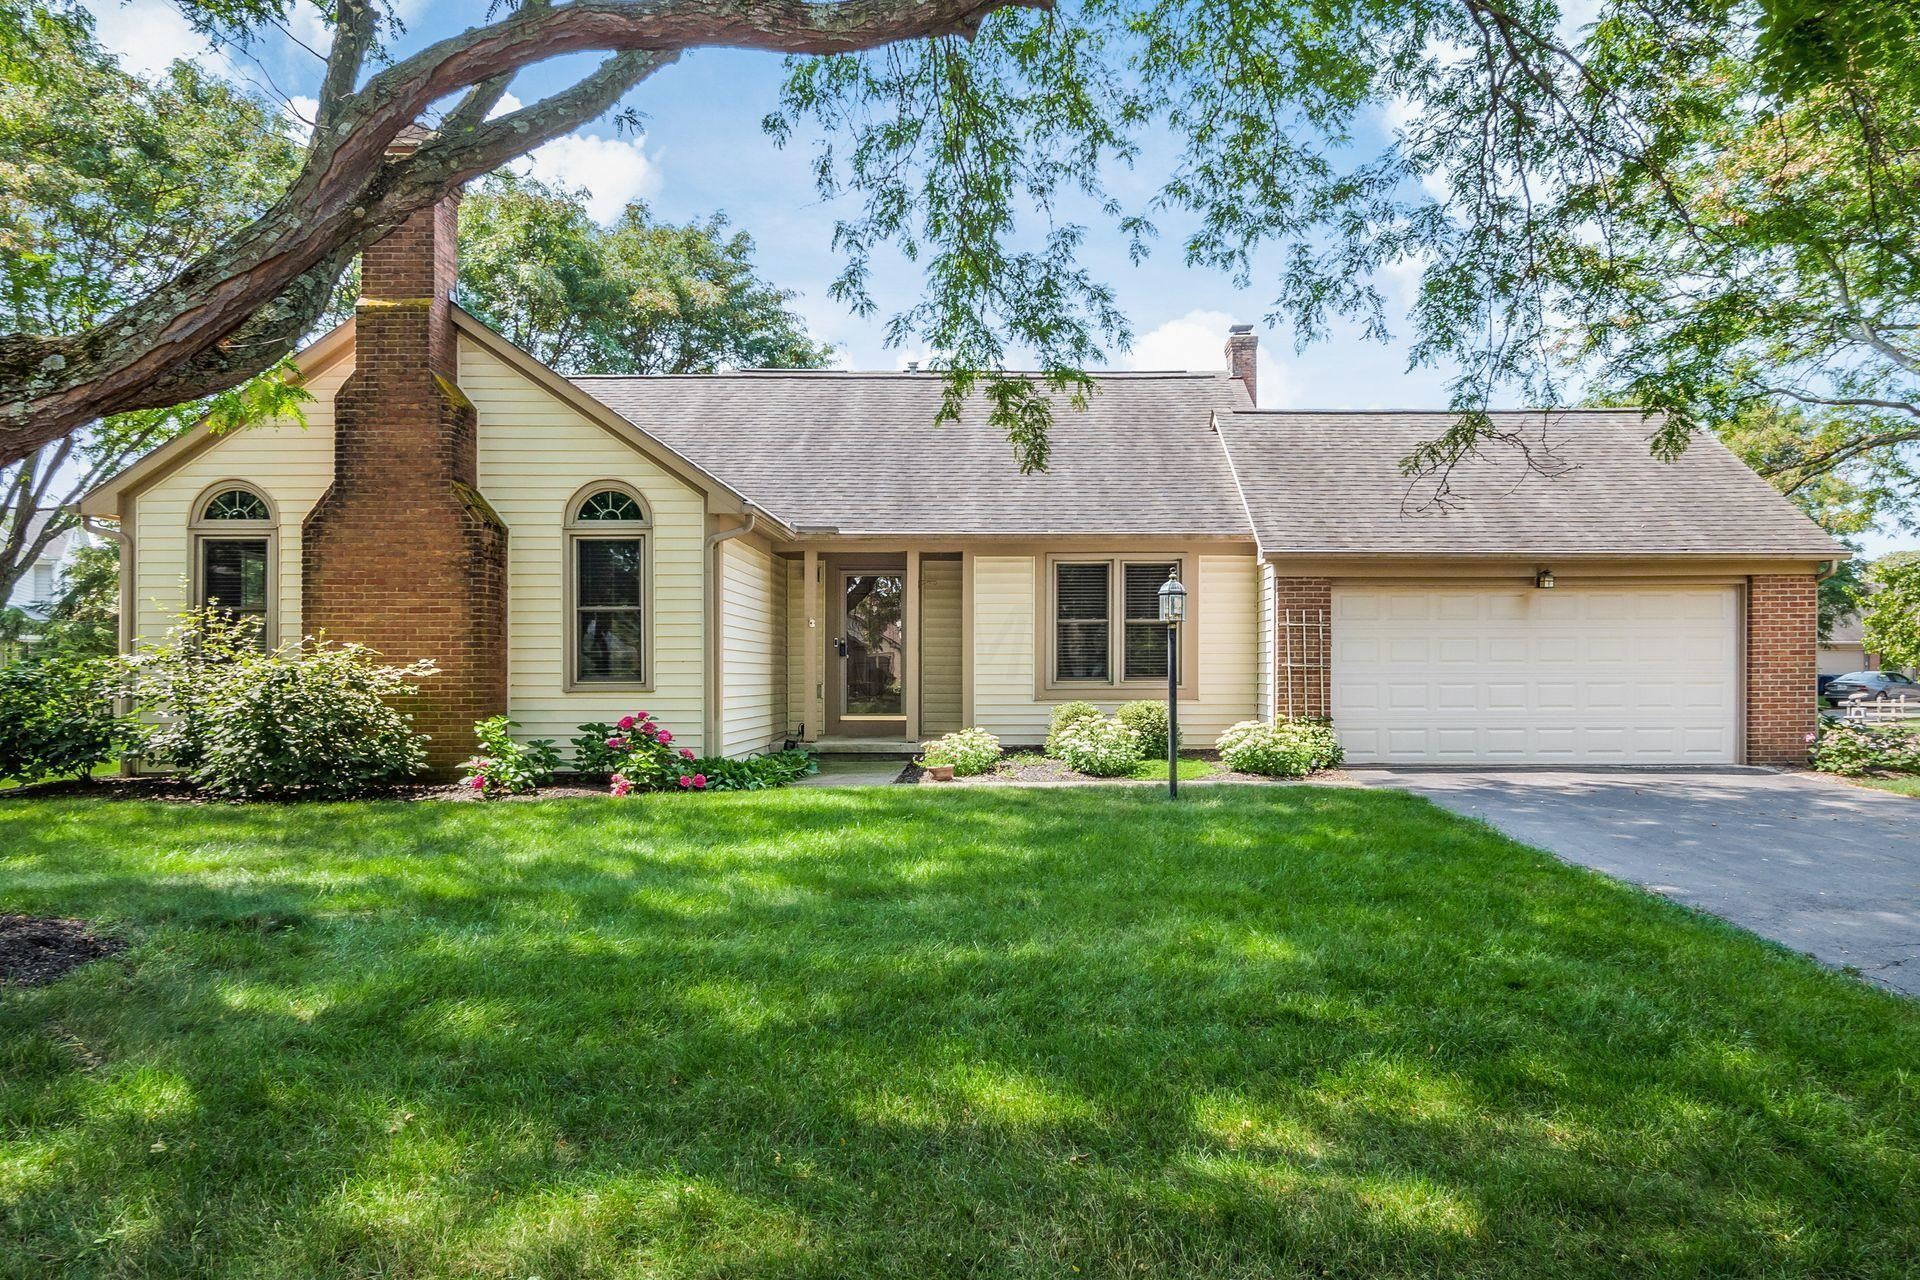 Photo of 5355 Mcginty Court, Dublin, OH 43017 (MLS # 221028082)